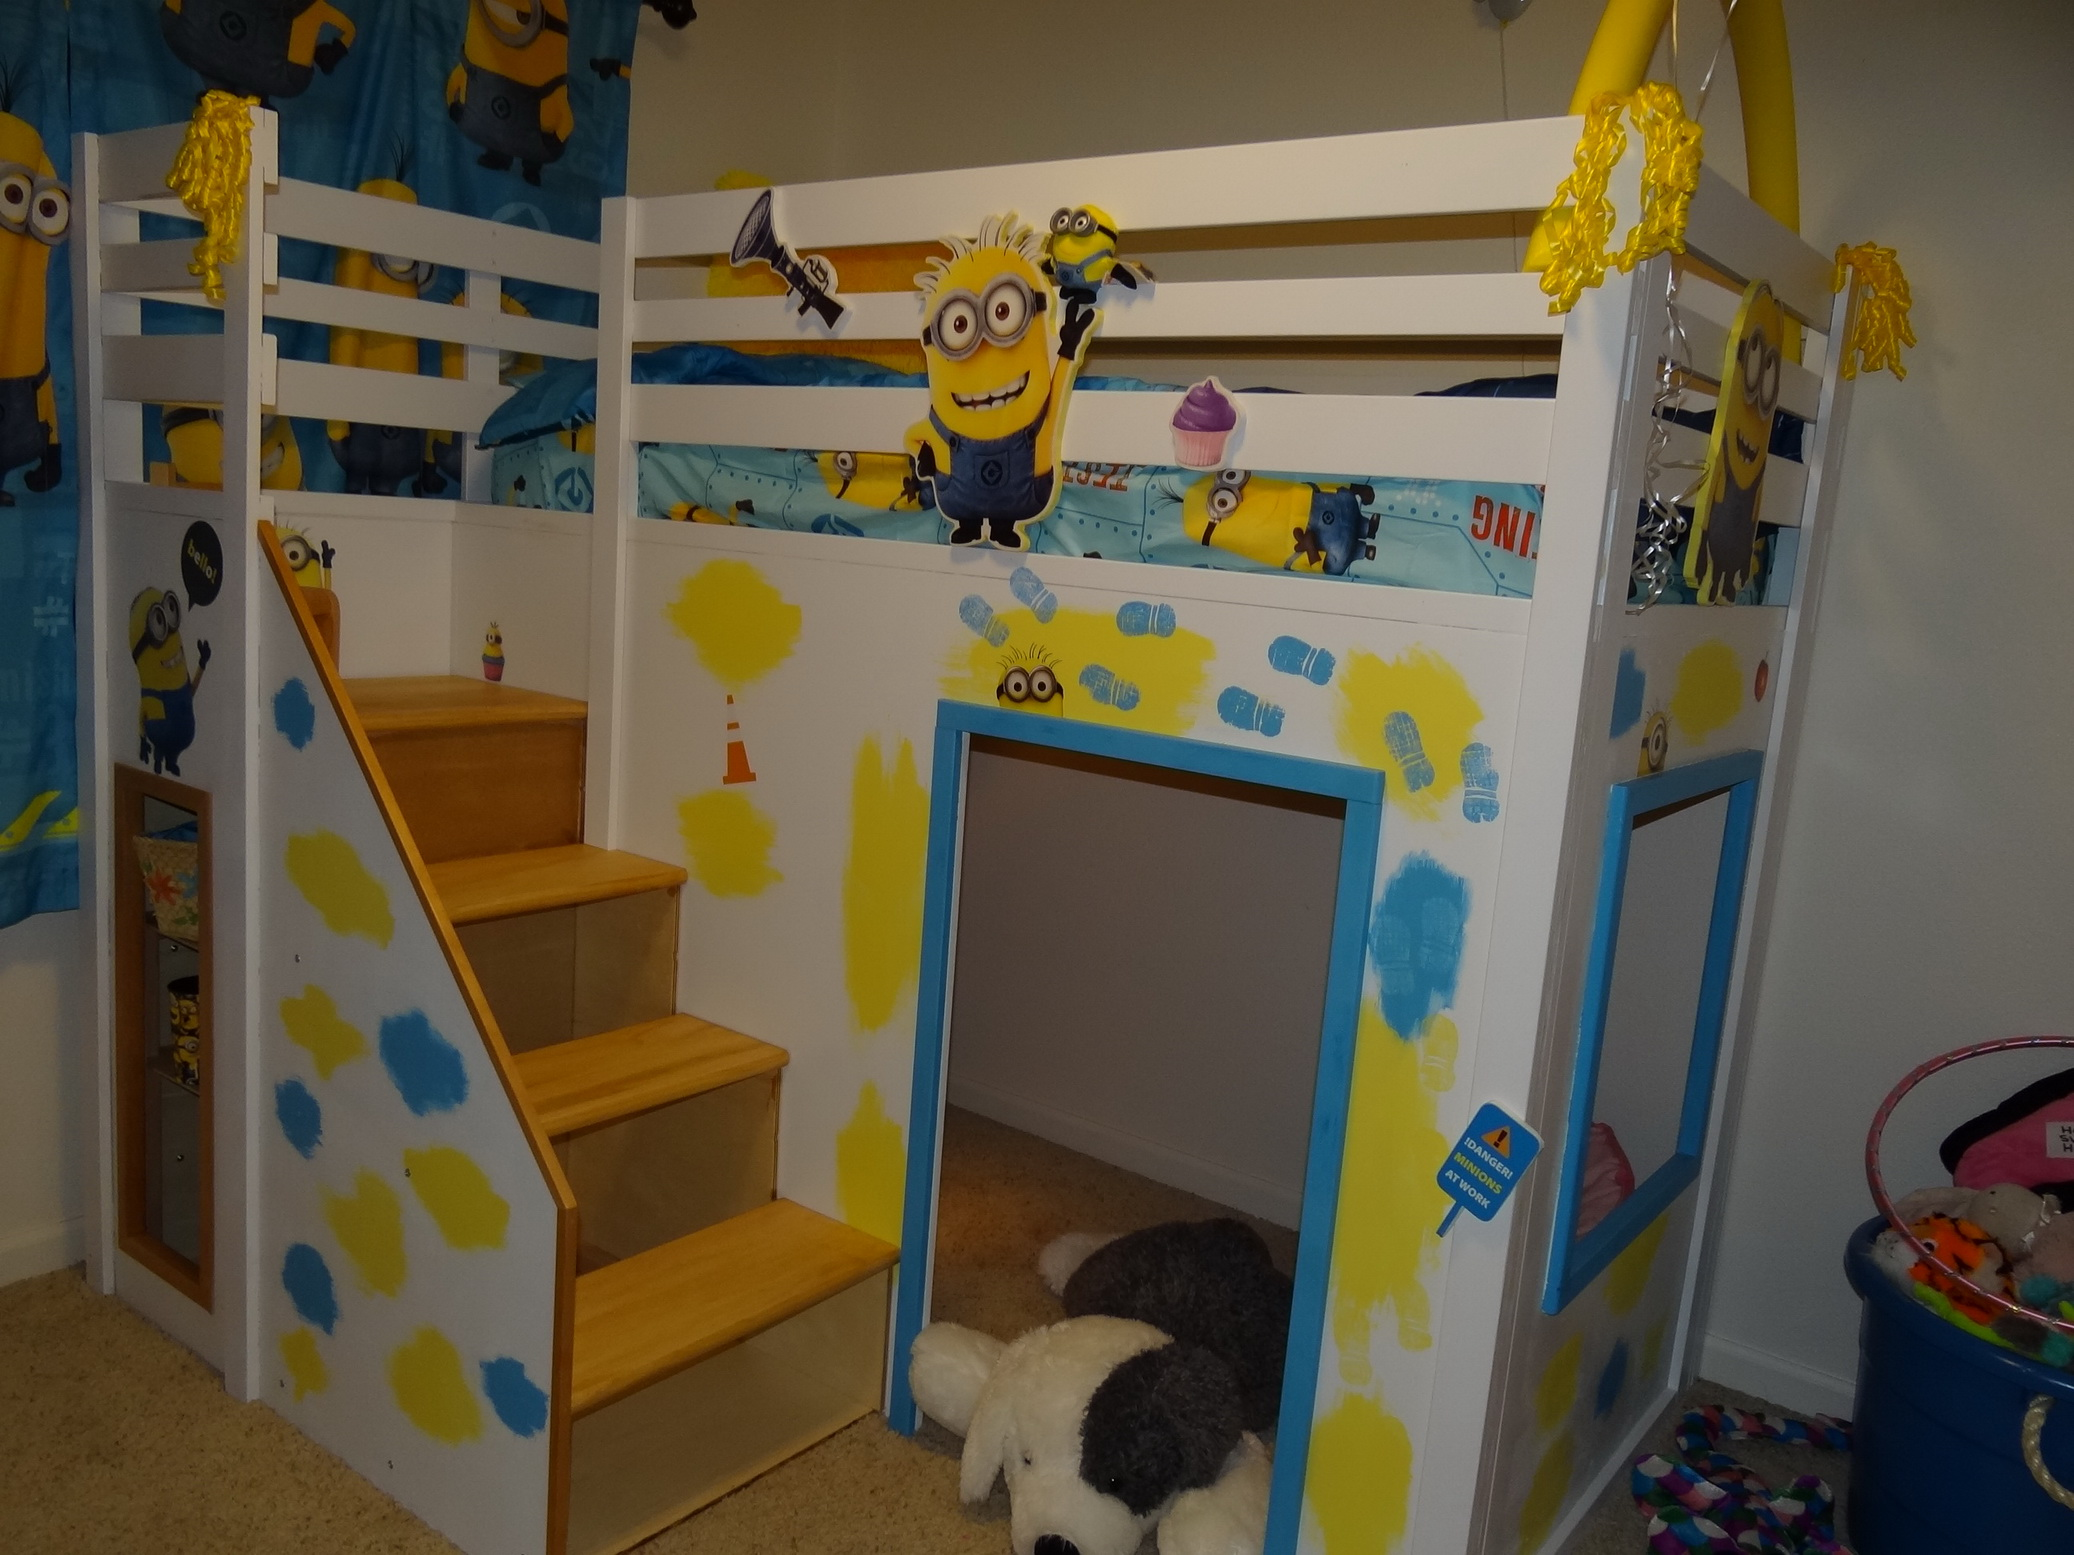 1 Bedroom Apartments In Springfield Mo Minion Bed 28 Images Minion Bed Set King Size